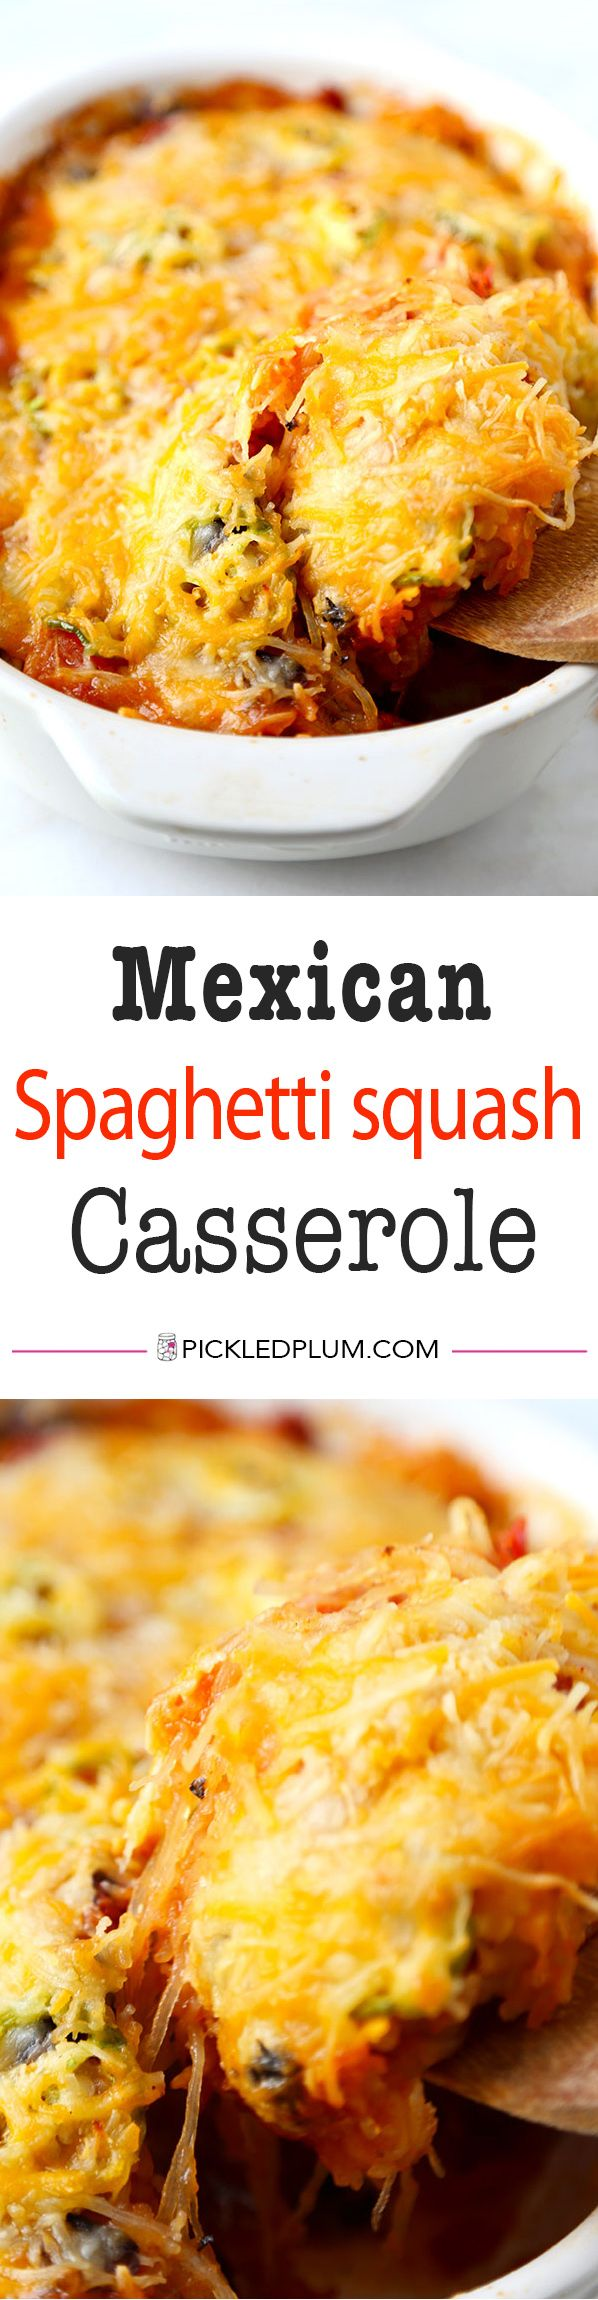 Mexican Spaghetti Squash Casserole With Simple Avocado Salsa - With the colors of autumn and peppy, south-of-the-border flavor, this Mexican Spaghetti Squash Casserole  is healthy dinner perfection! Recipe, baking, vegetables, dinner, casserole, healthy, spaghetti squash | pickledplum.com